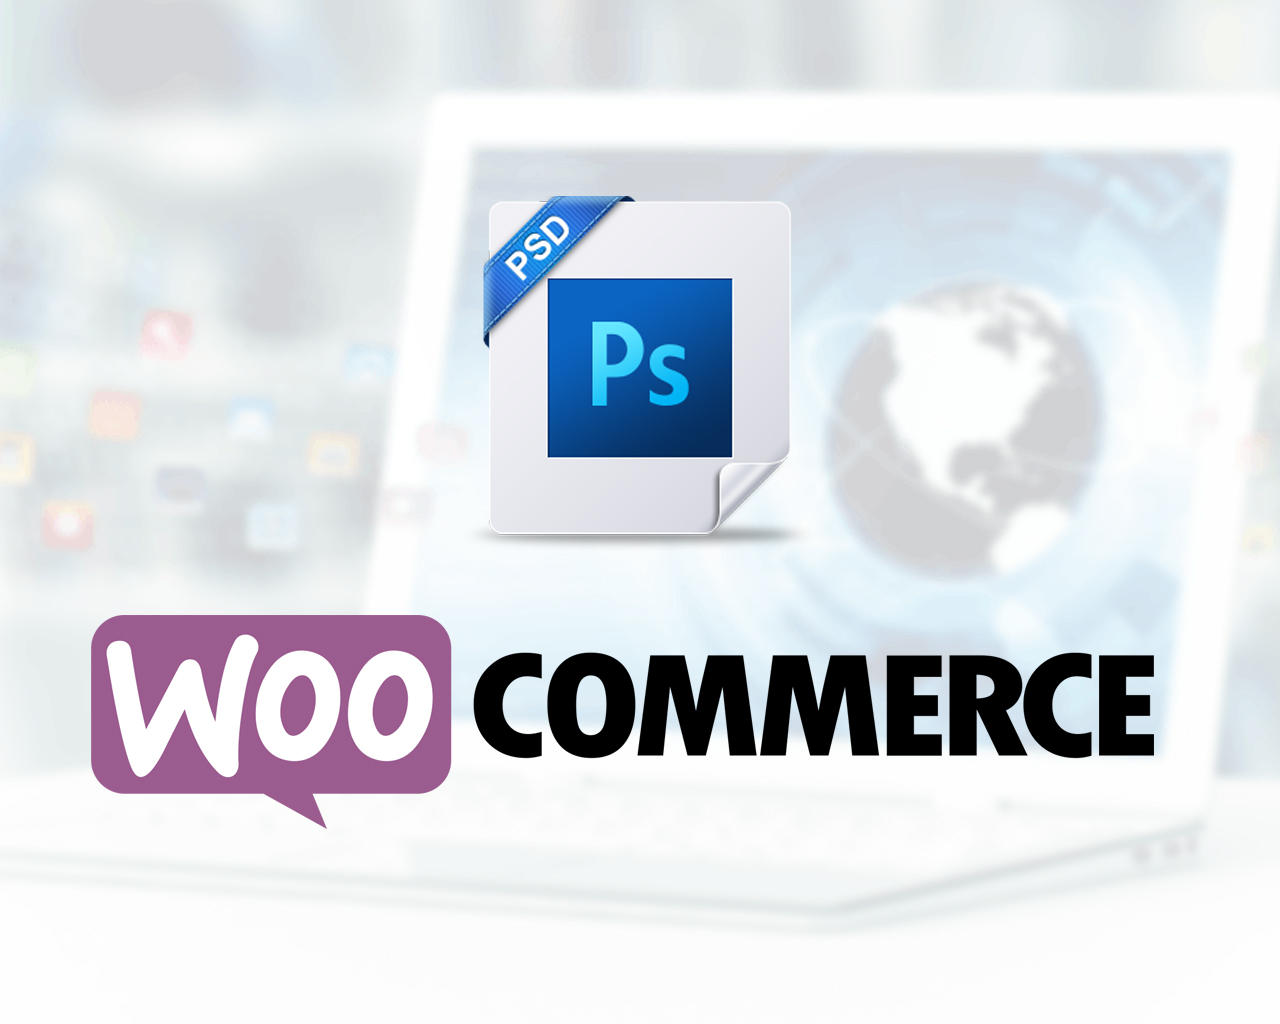 PSD To WooComerce Site by madridnyc - 107479